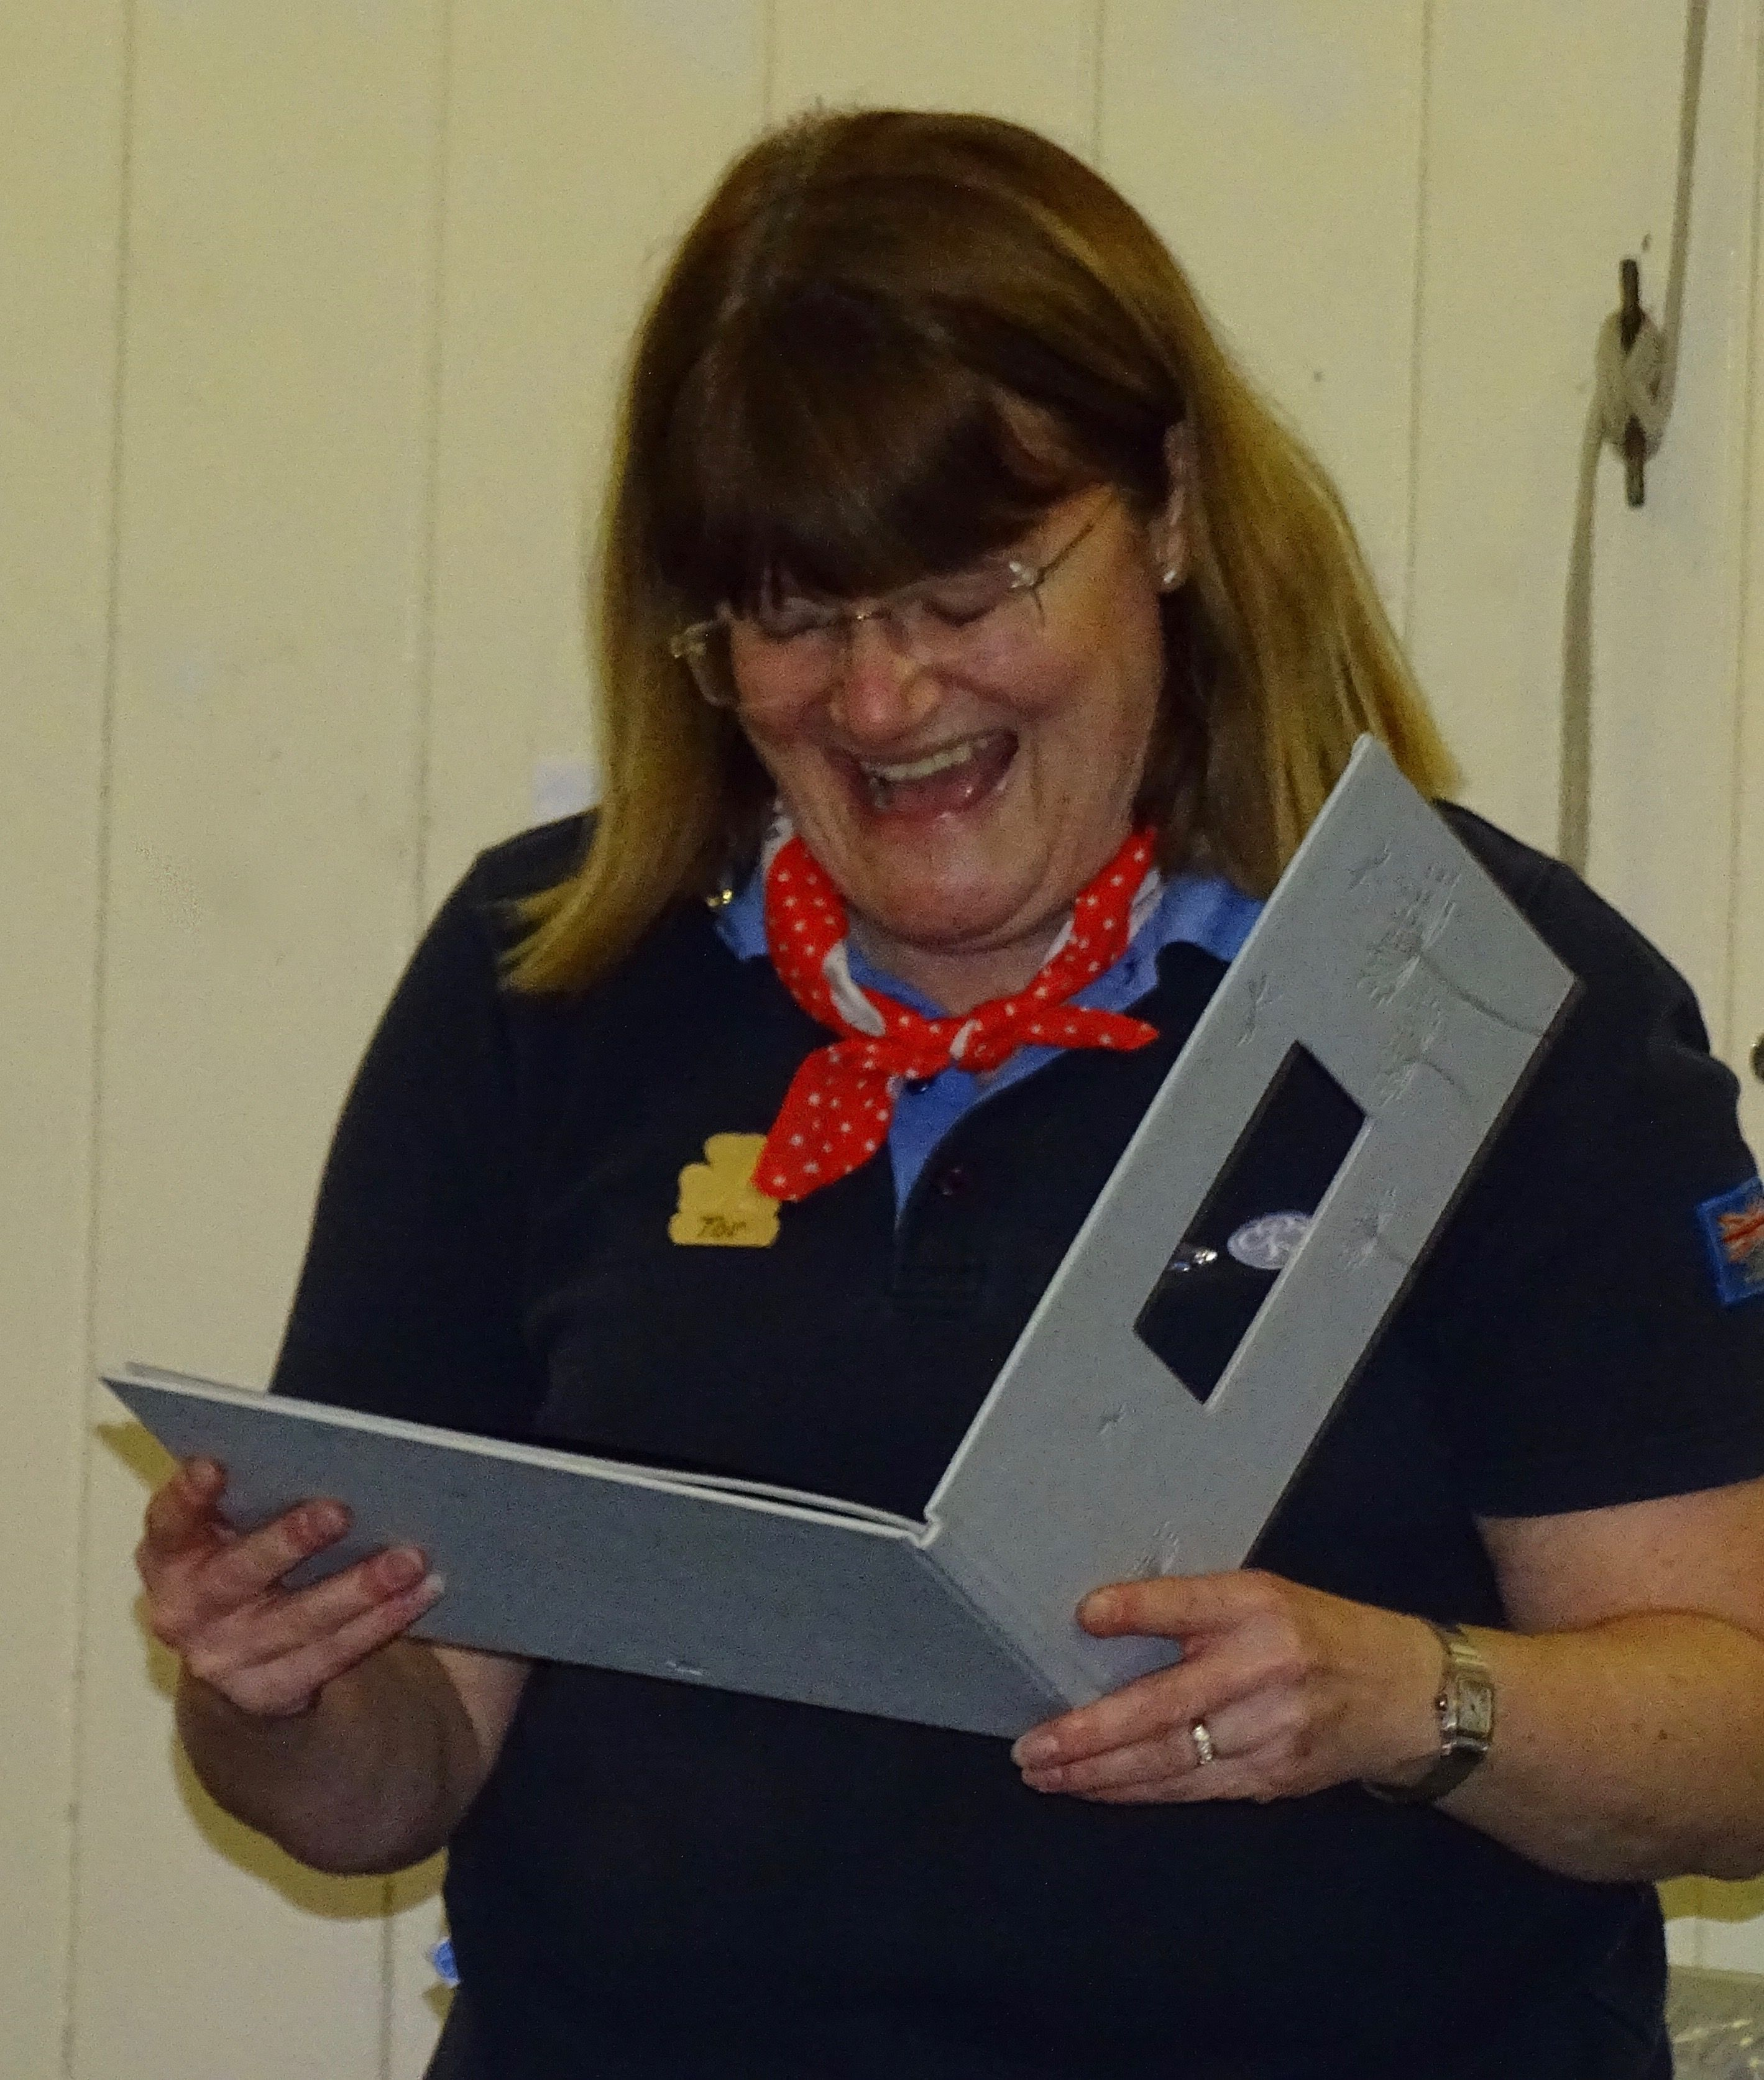 Thanks to our outgoing County Commissioner